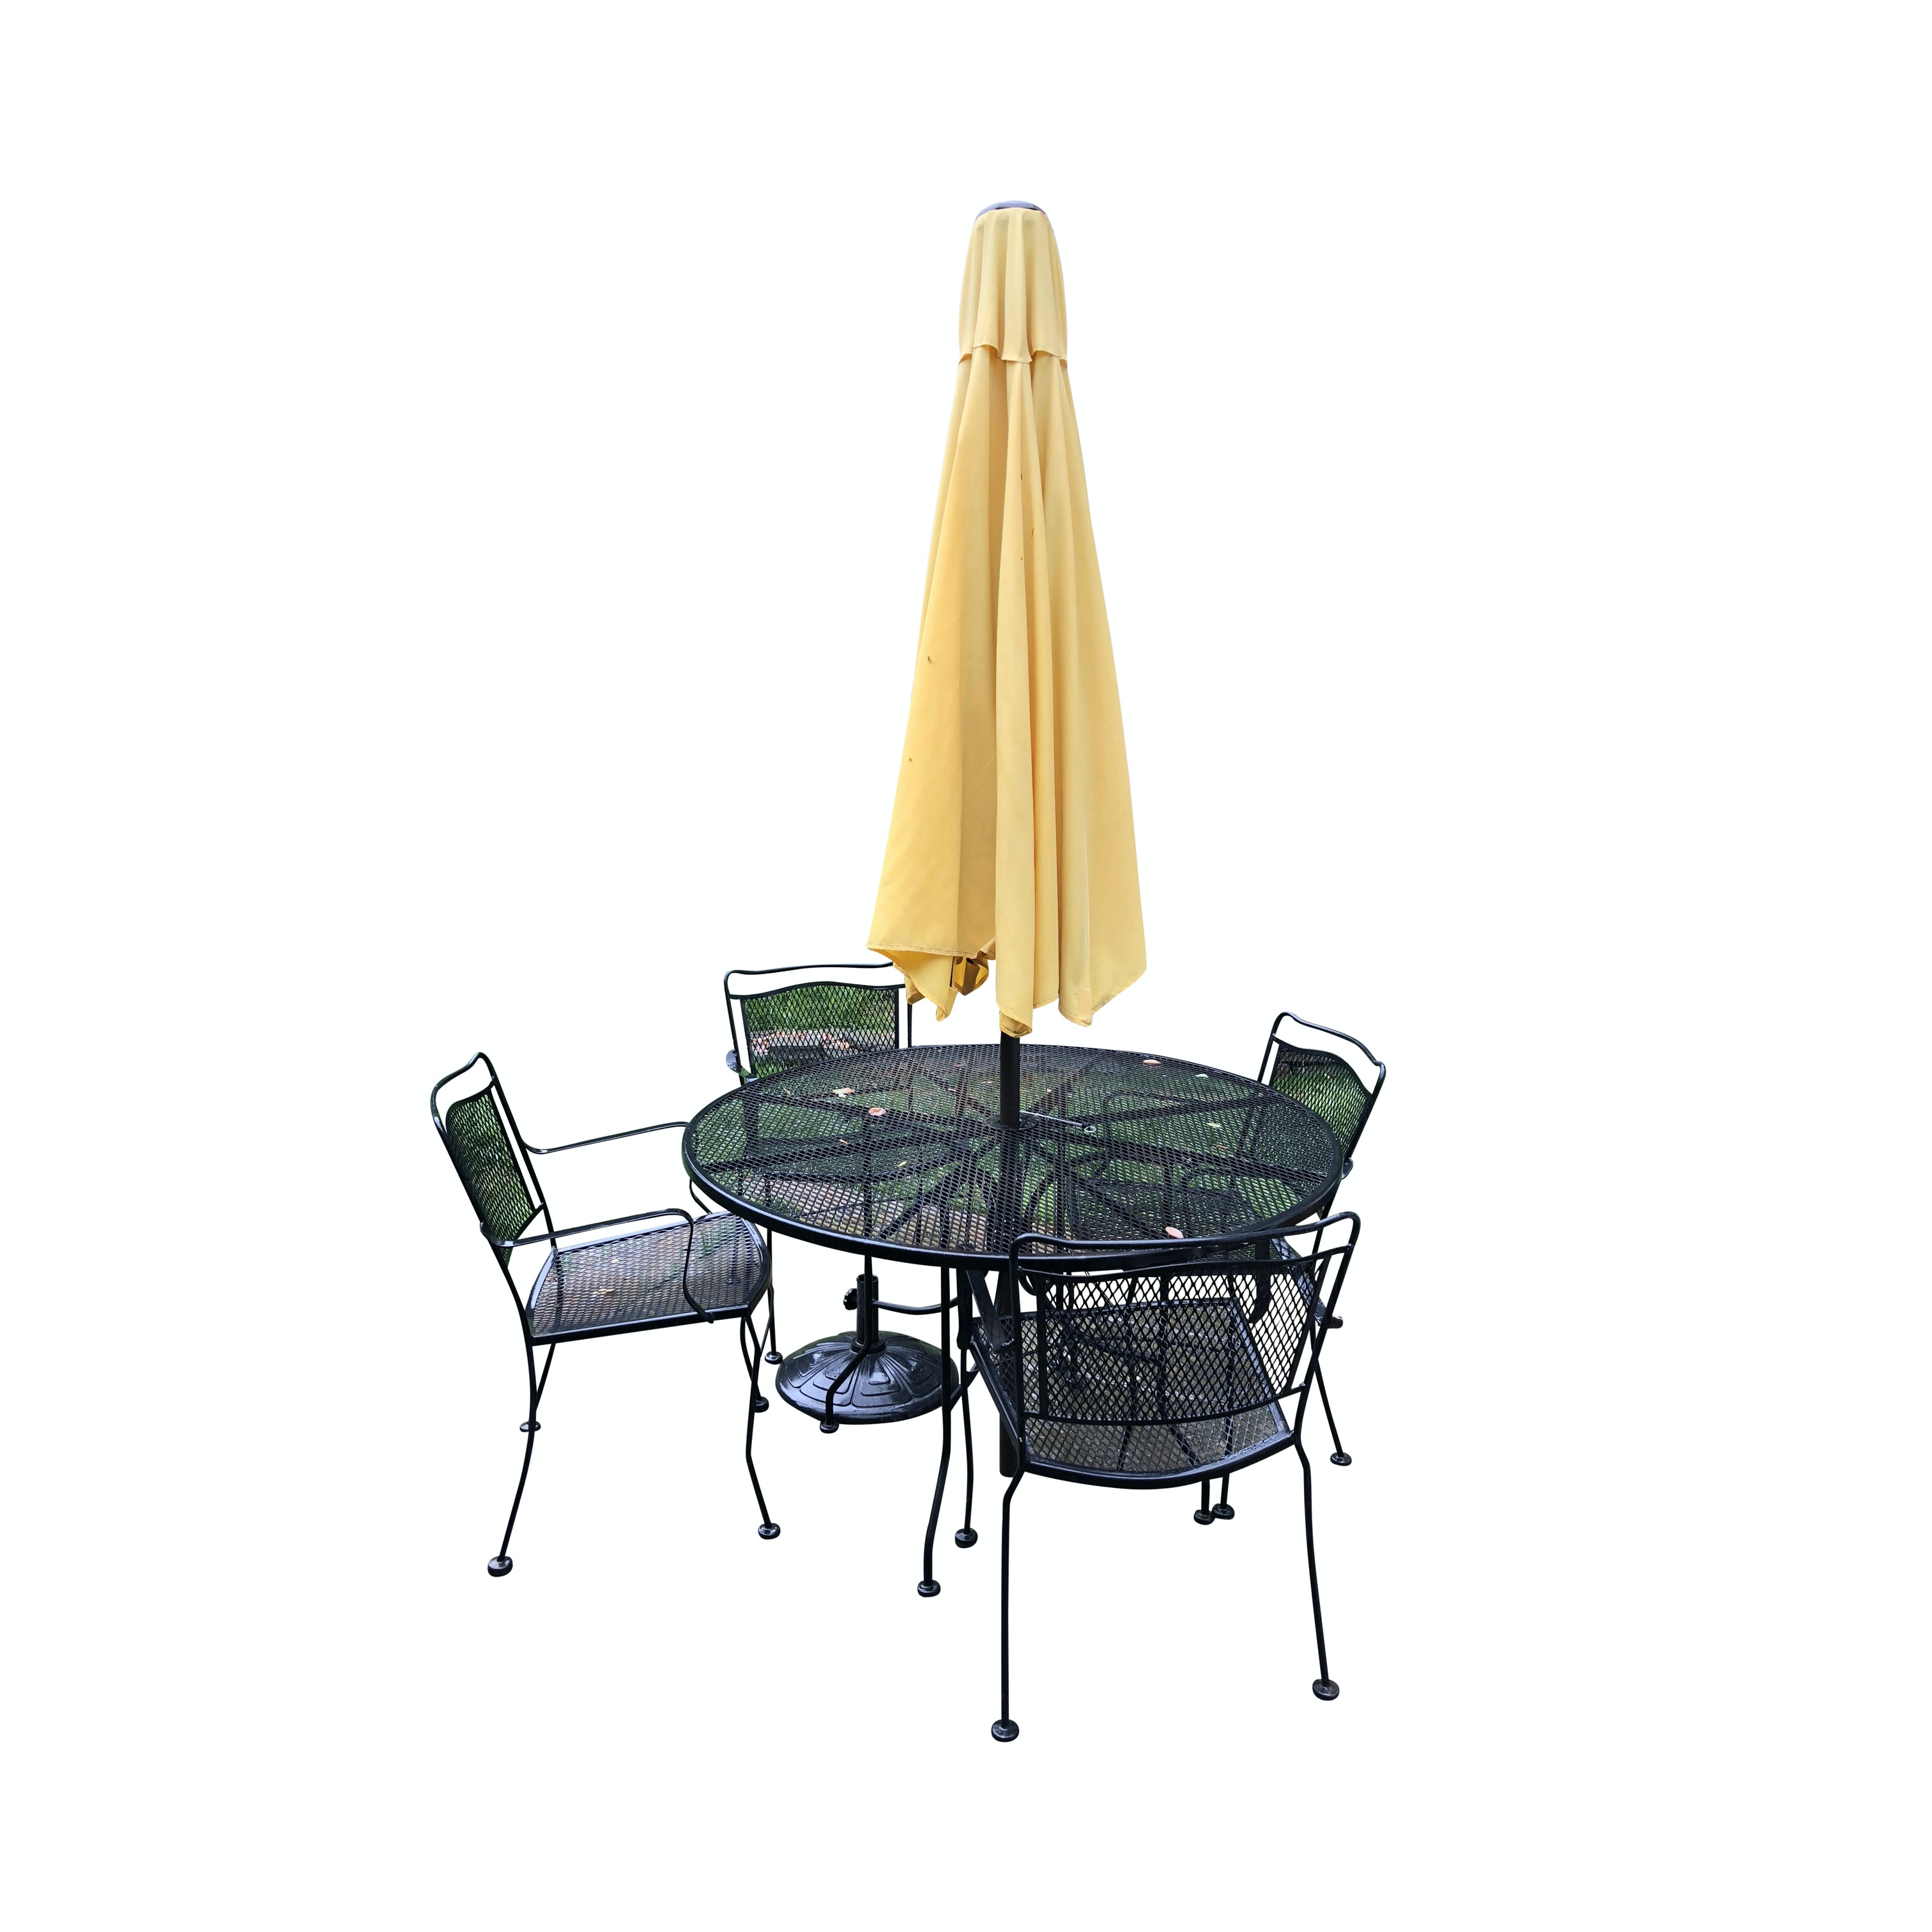 Metal Patio Dining Table with Umbrella and Chairs